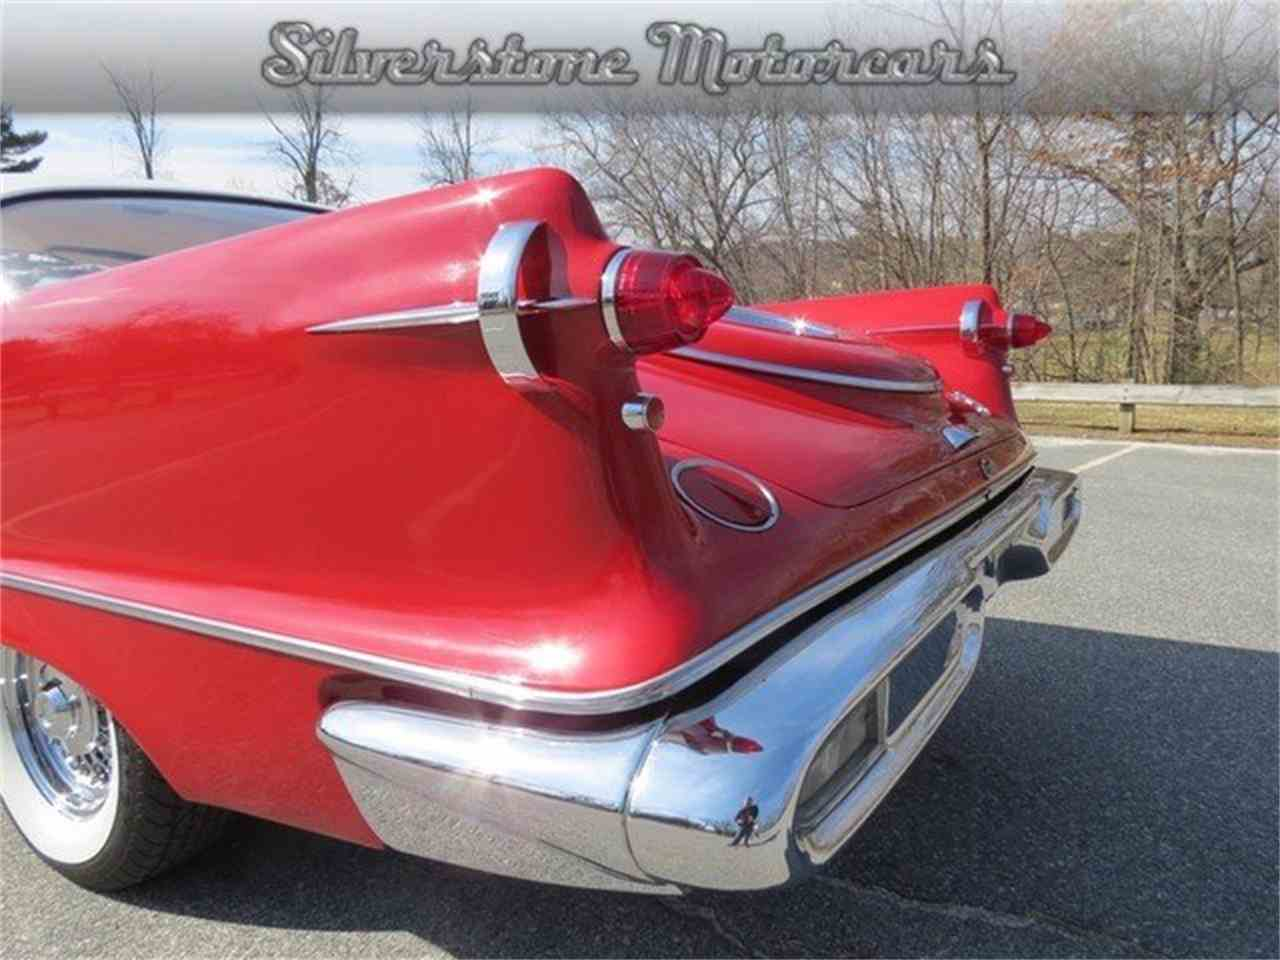 Large Picture of Classic 1958 Chrysler Southampton located in North Andover Massachusetts Offered by Silverstone Motorcars - F8I7